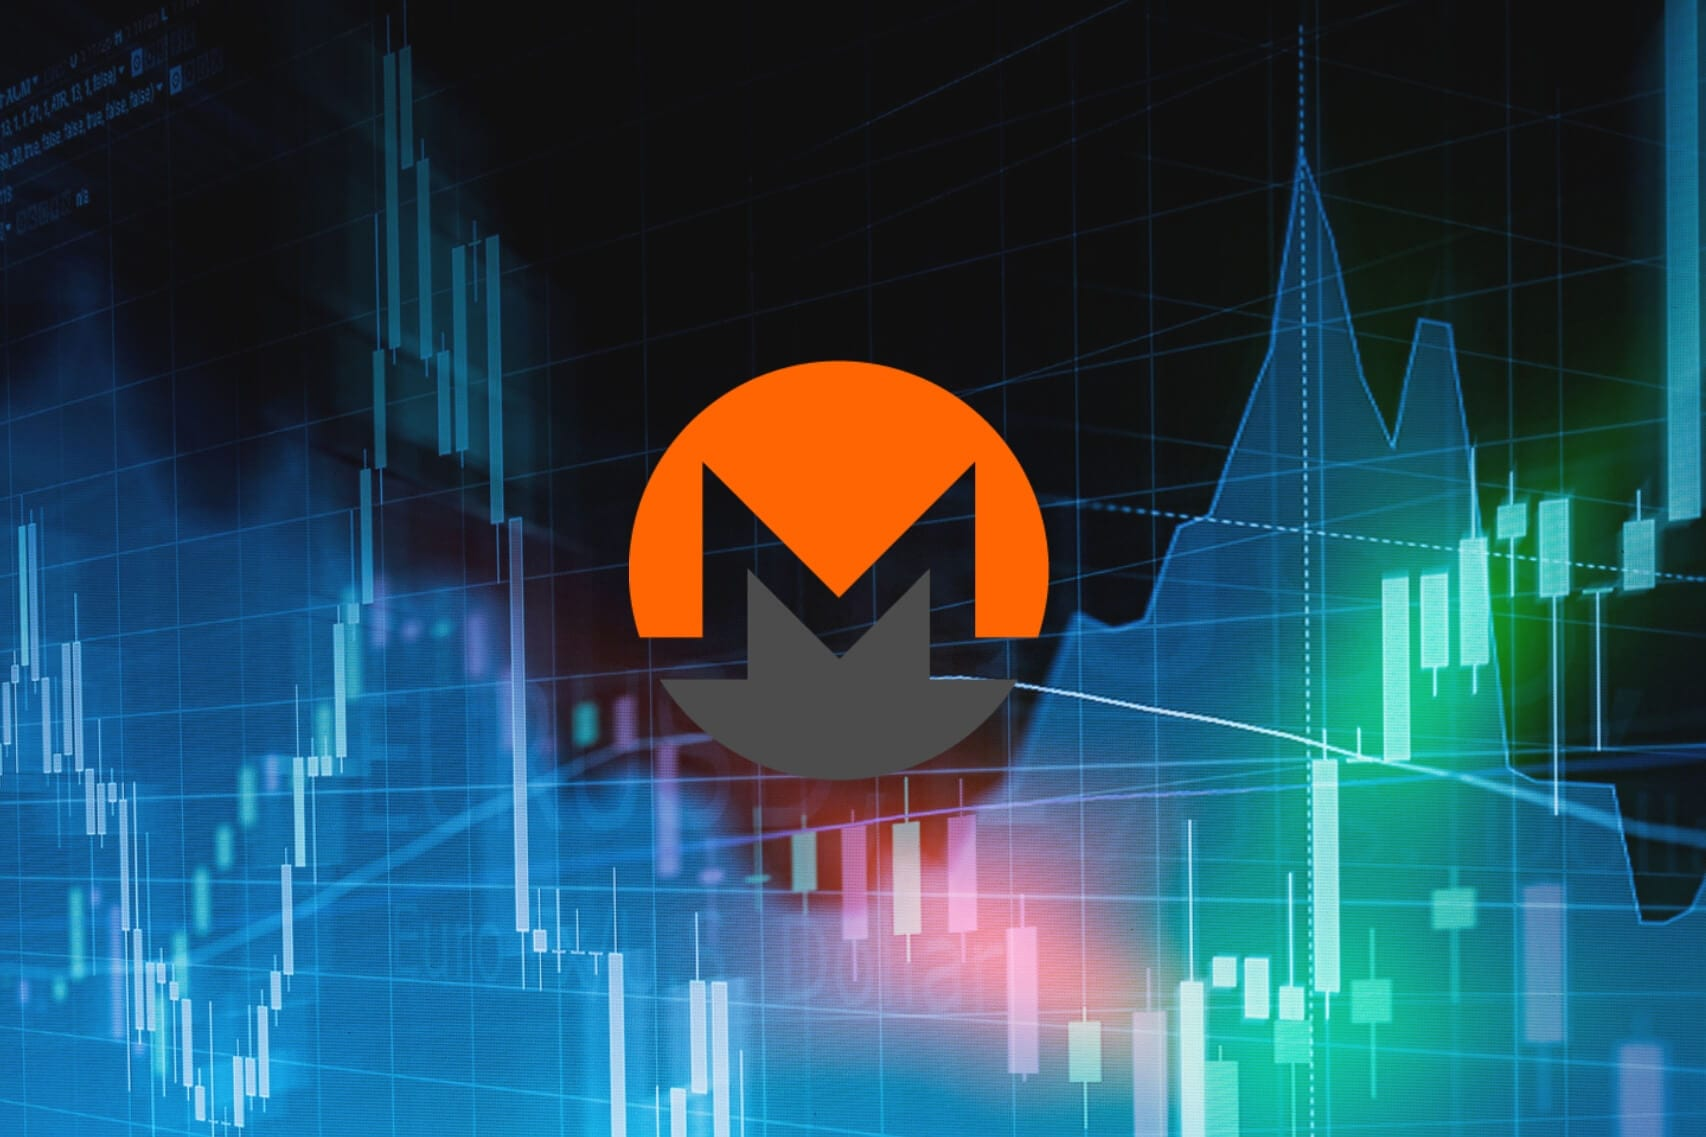 2eecfde6a472f60a34b59857567f14aa - Monero Price Prediction: XMR Is Expected To Reach $650 In 2019 And $2,000 In Five Years